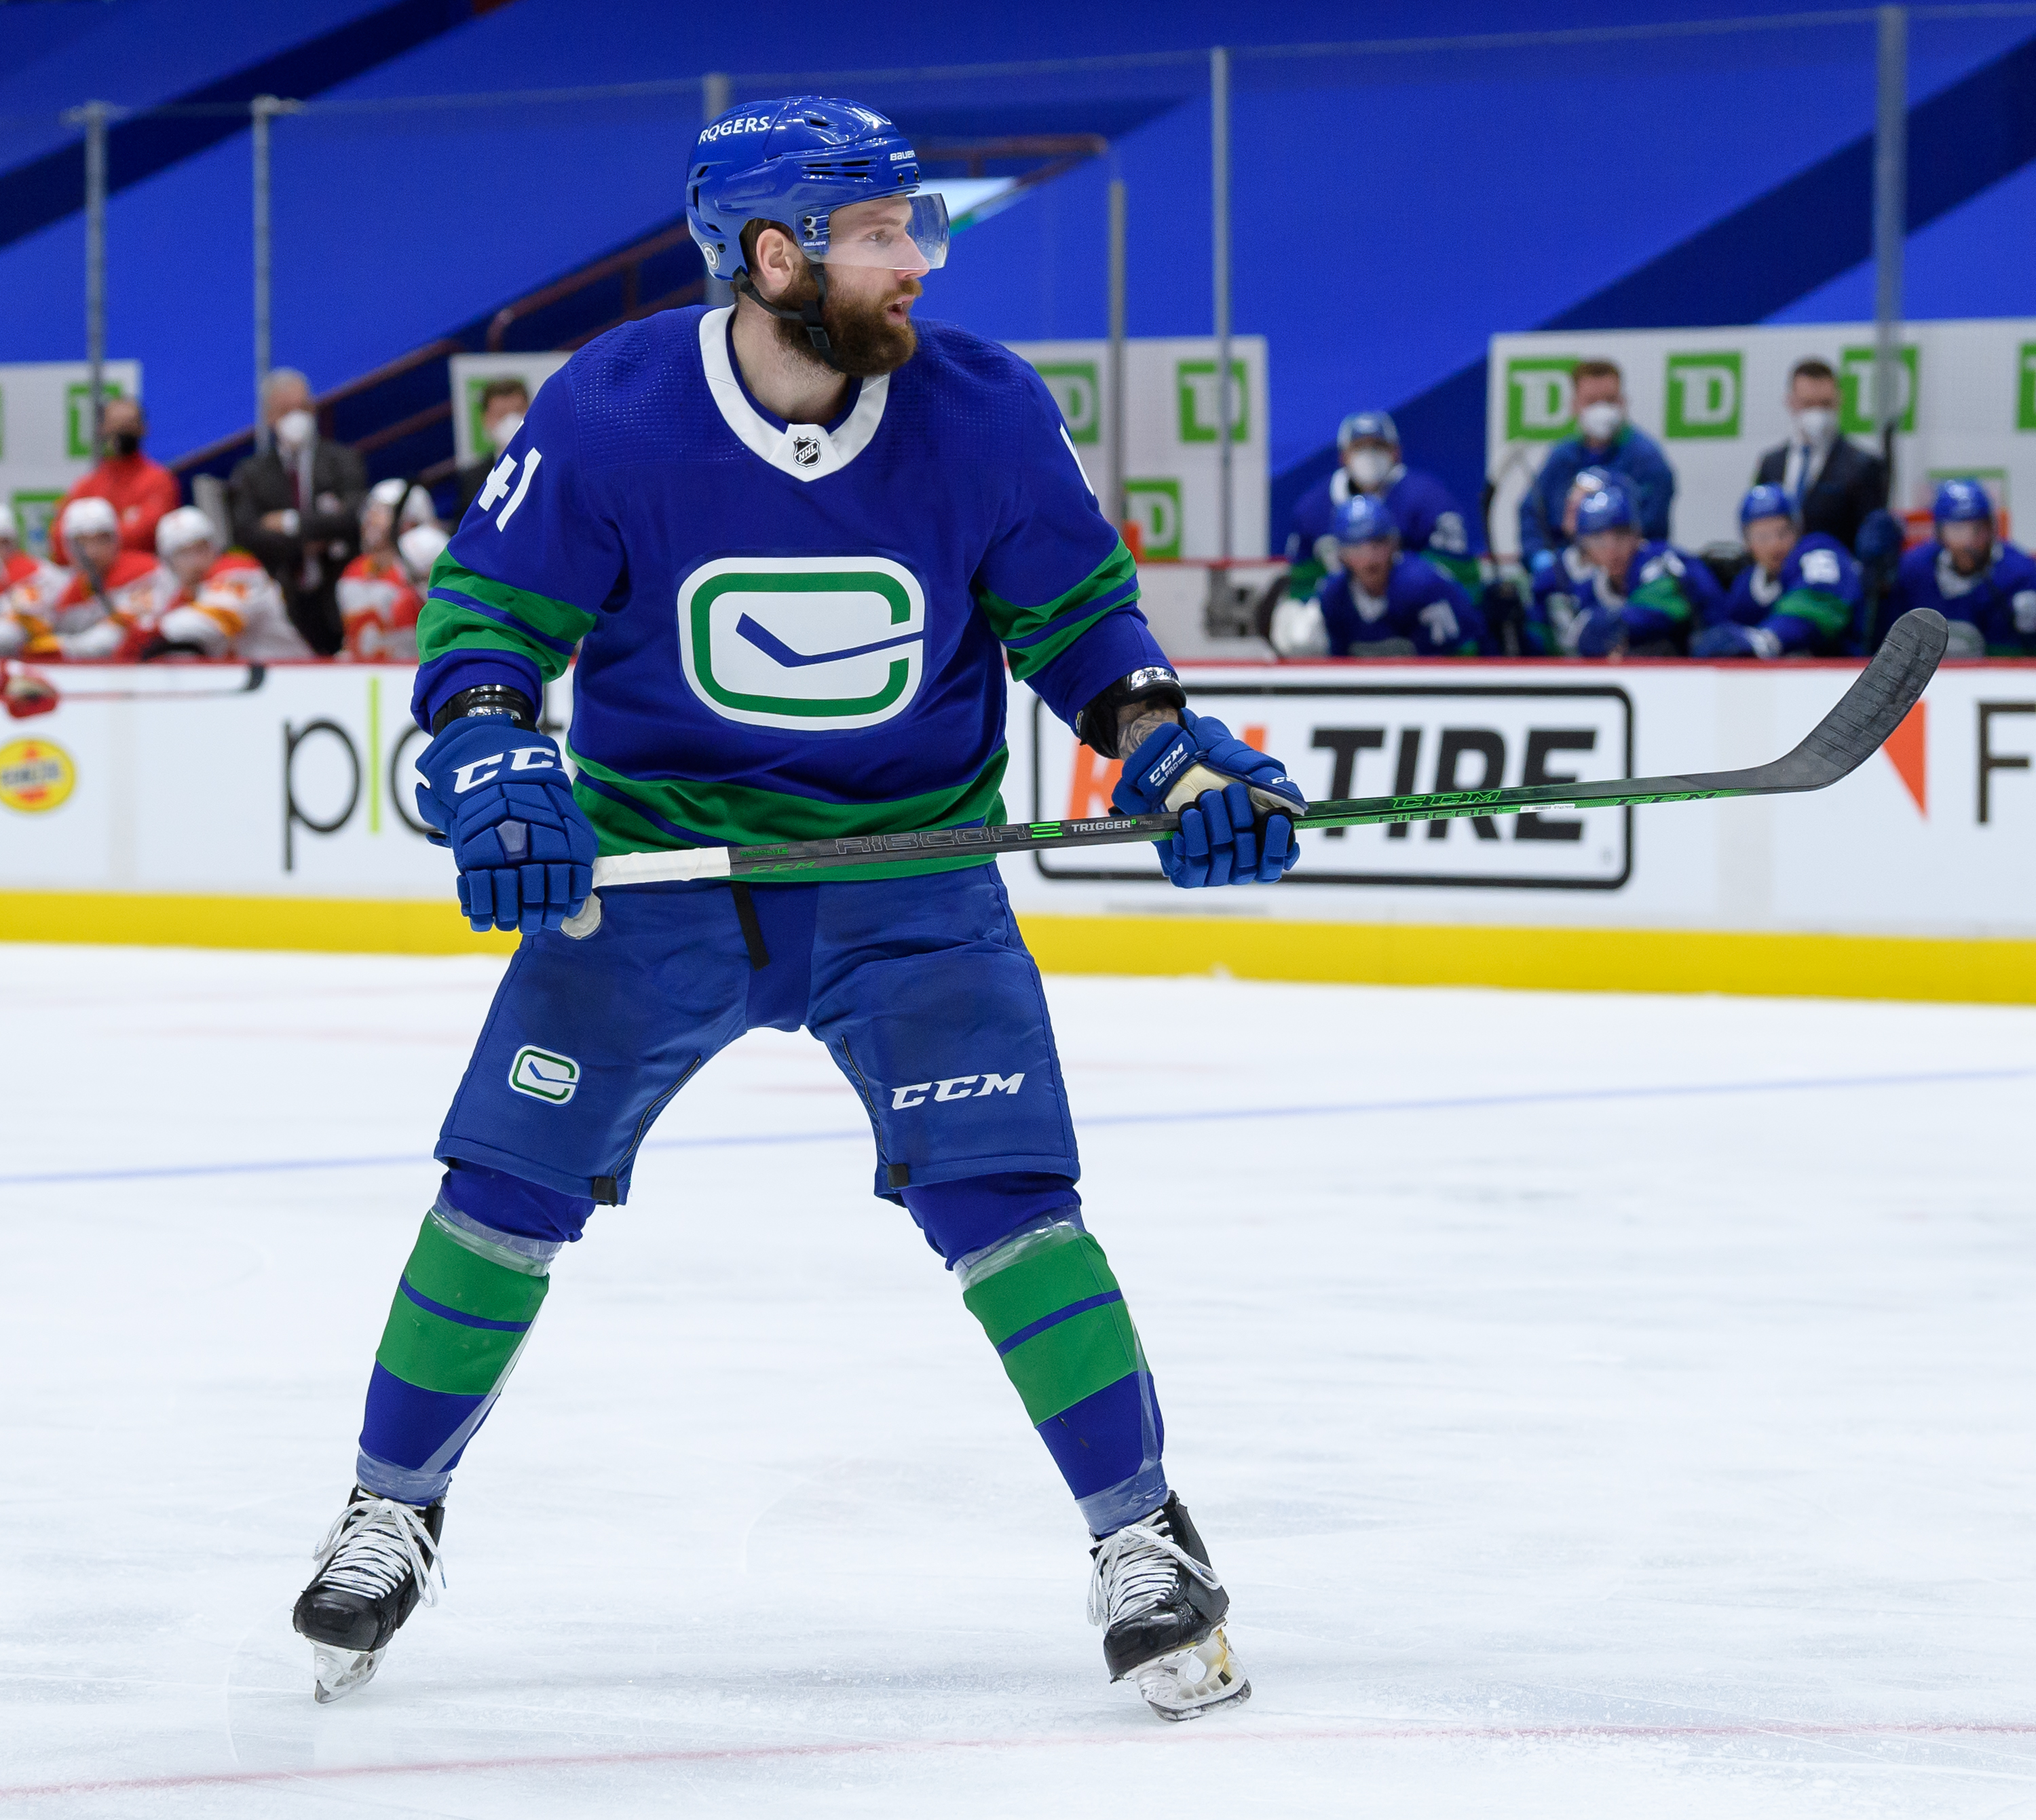 Vancouver Canucks left wing Jonah Gadjovich (41) skates up ice during their NHL game against the Calgary Flames at Rogers Arena on May 16, 2021 in Vancouver, British Columbia, Canada.